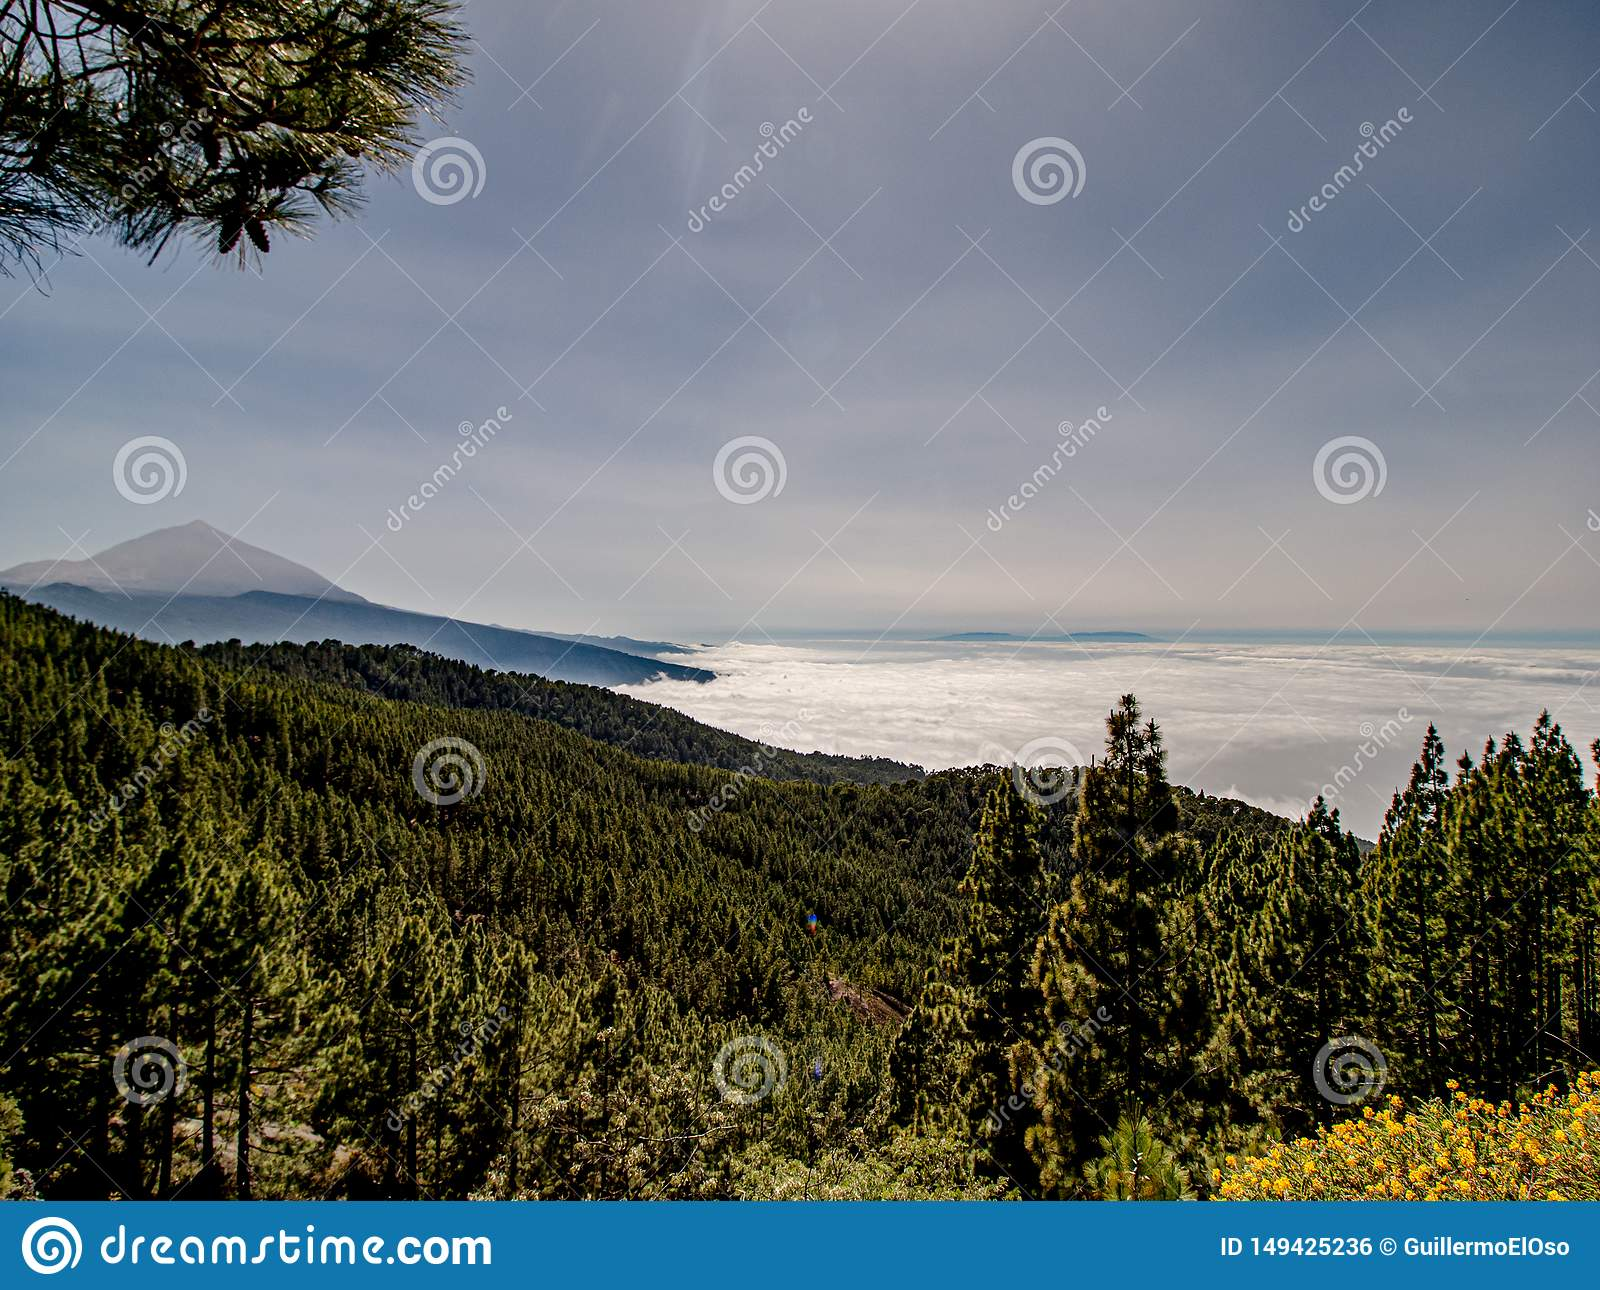 Spectacular view over the clouds to the mountain